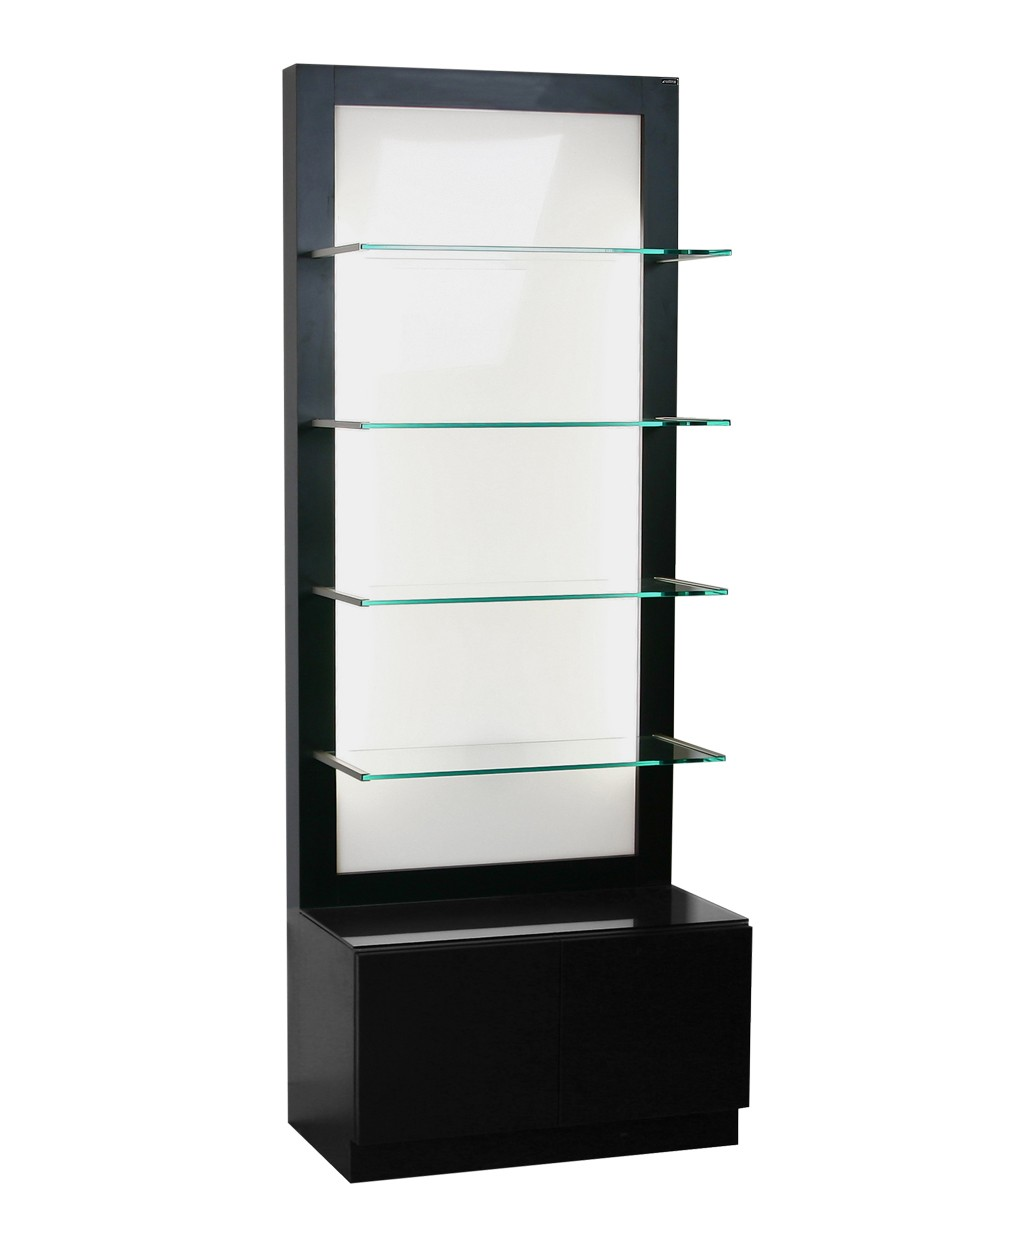 6650-32 Zada Backlit Retail Display with LED Lights